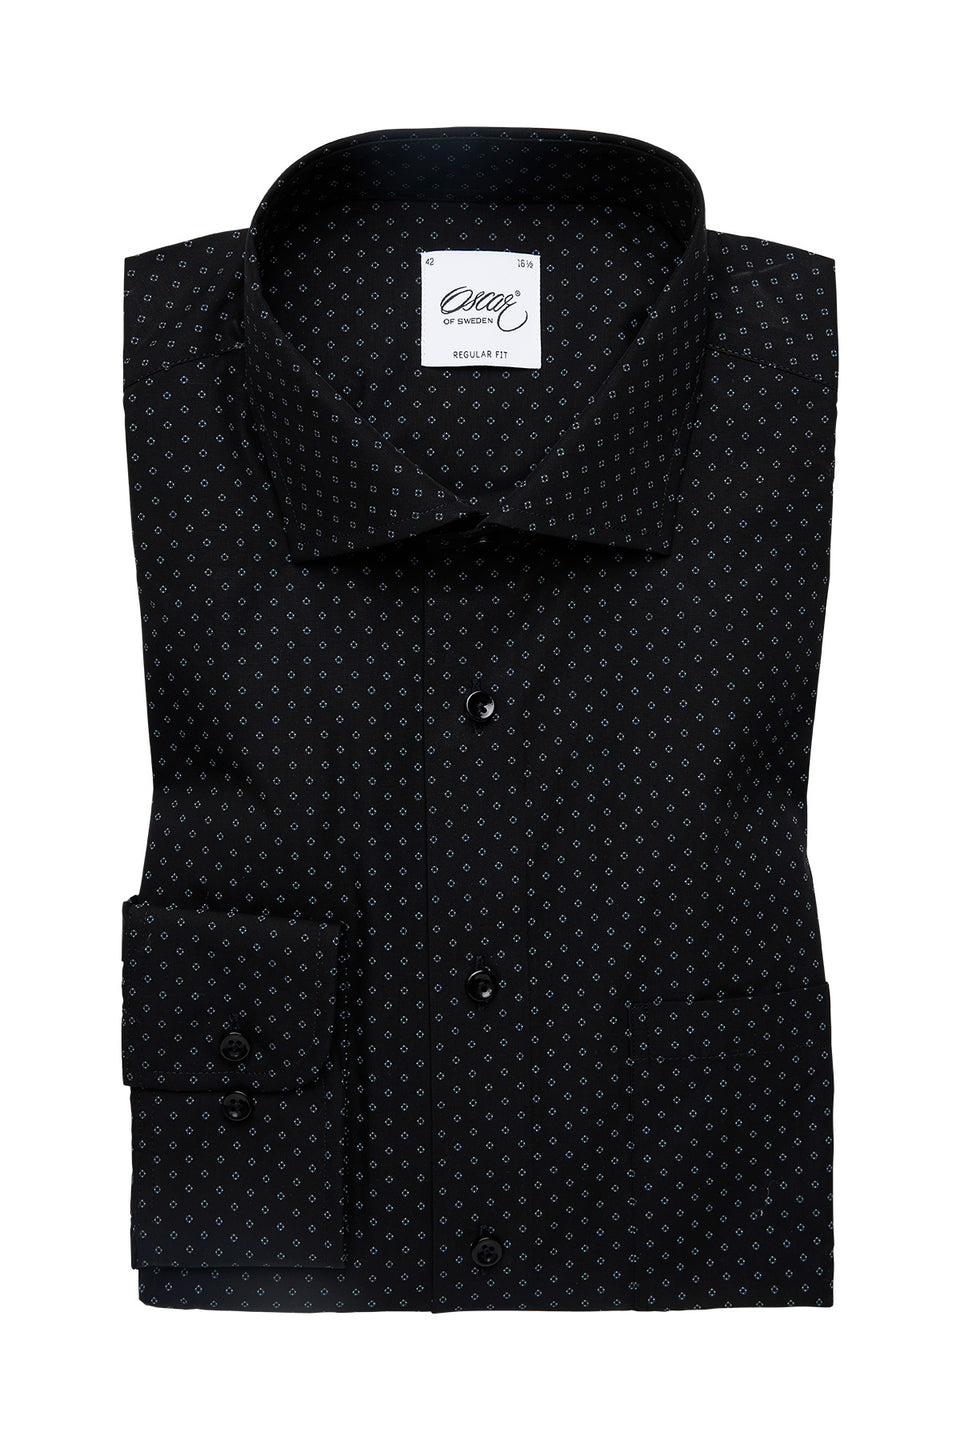 Black regular fit shirt with small flower print